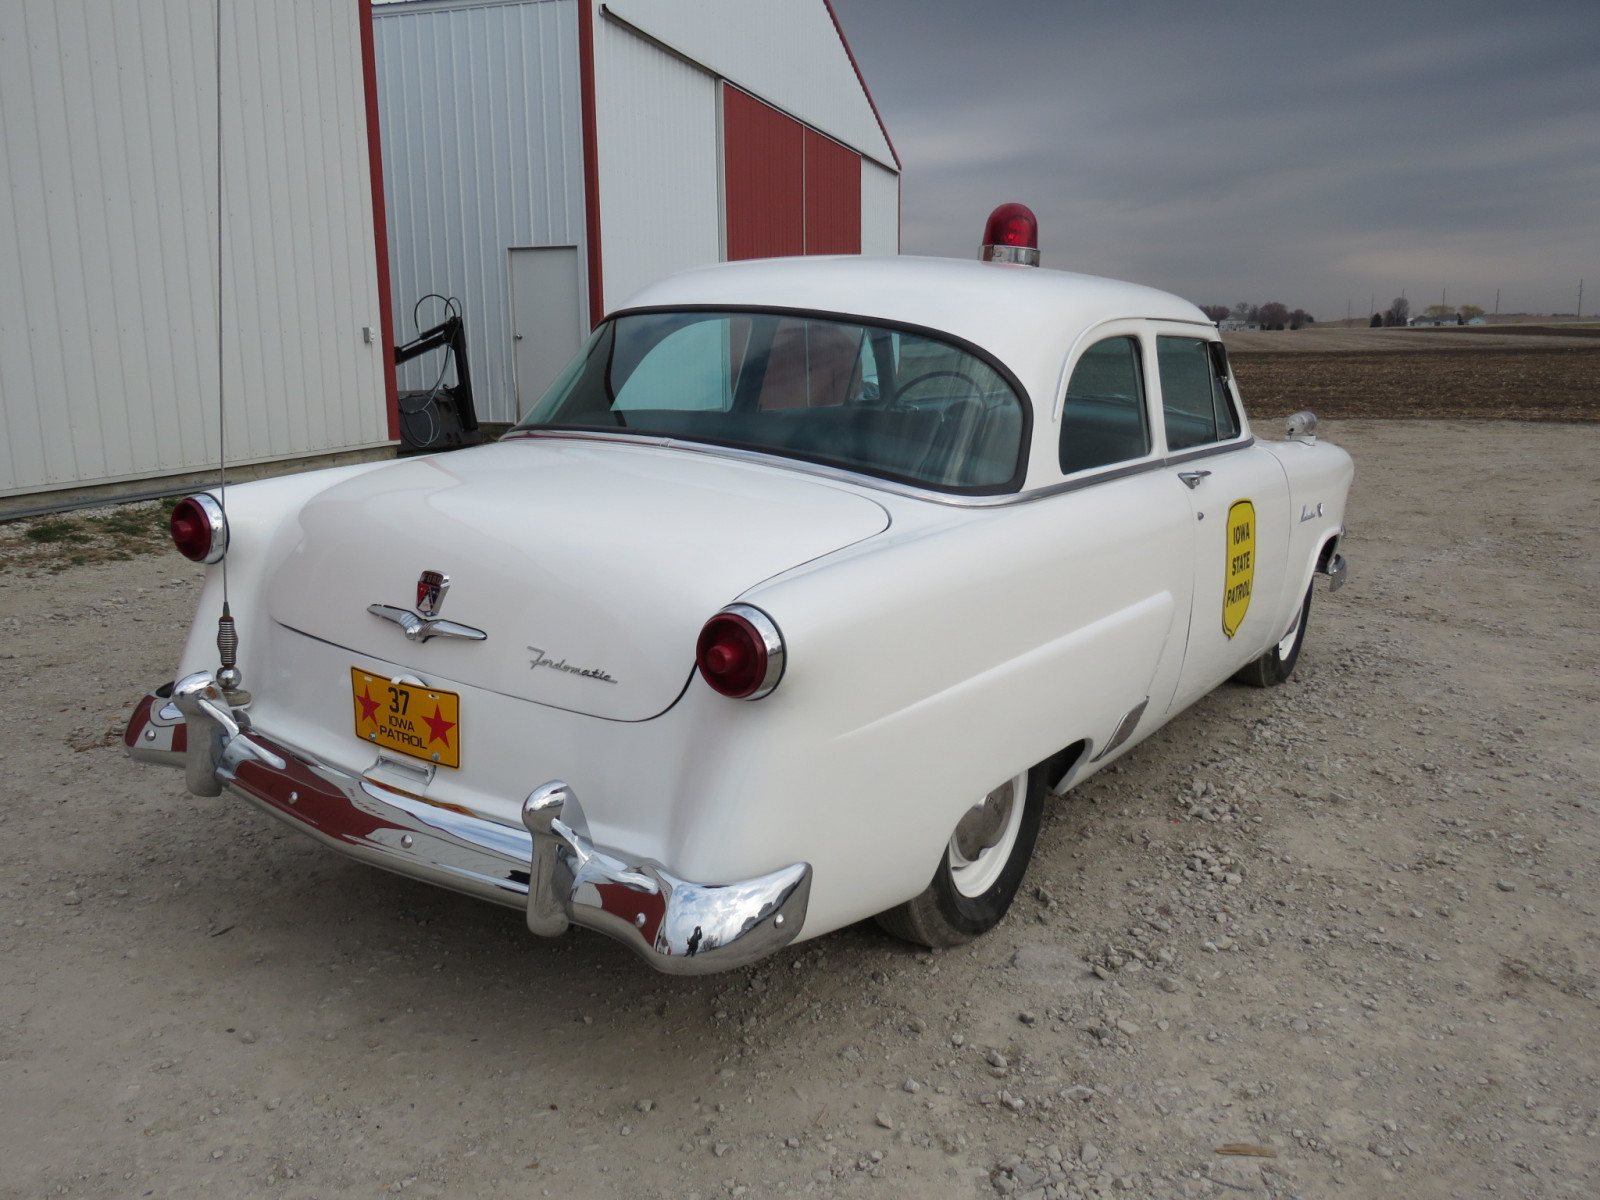 1953 Ford Mainline Iowa Patrol Car - Image 6